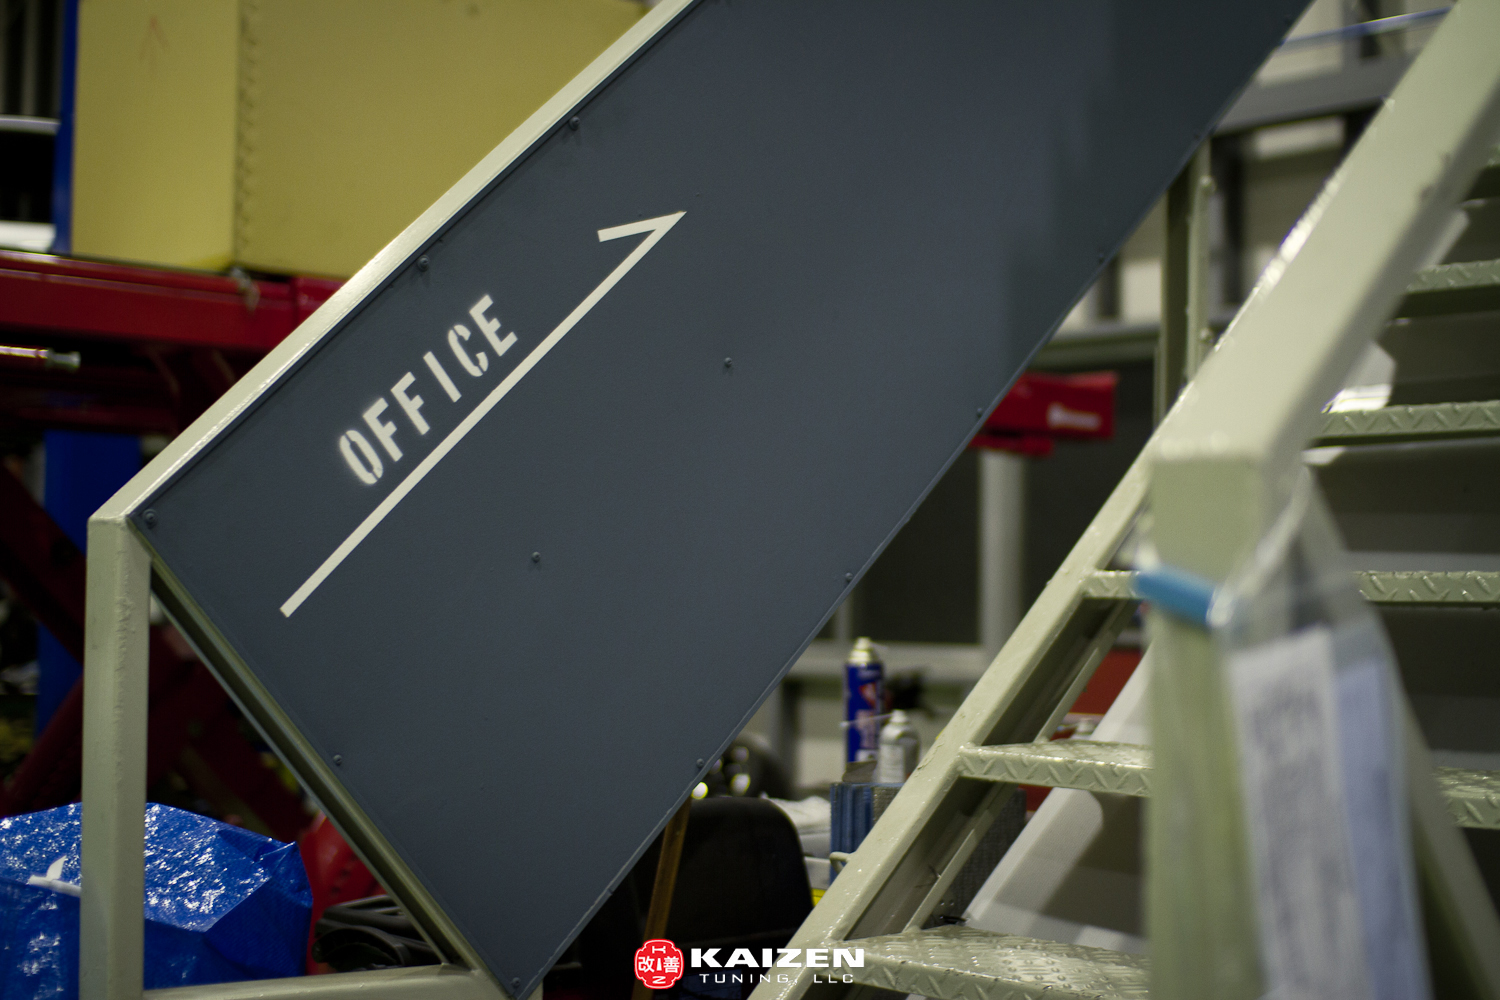 Kaizen Tuning Blog: A Visit to Garage G-Force